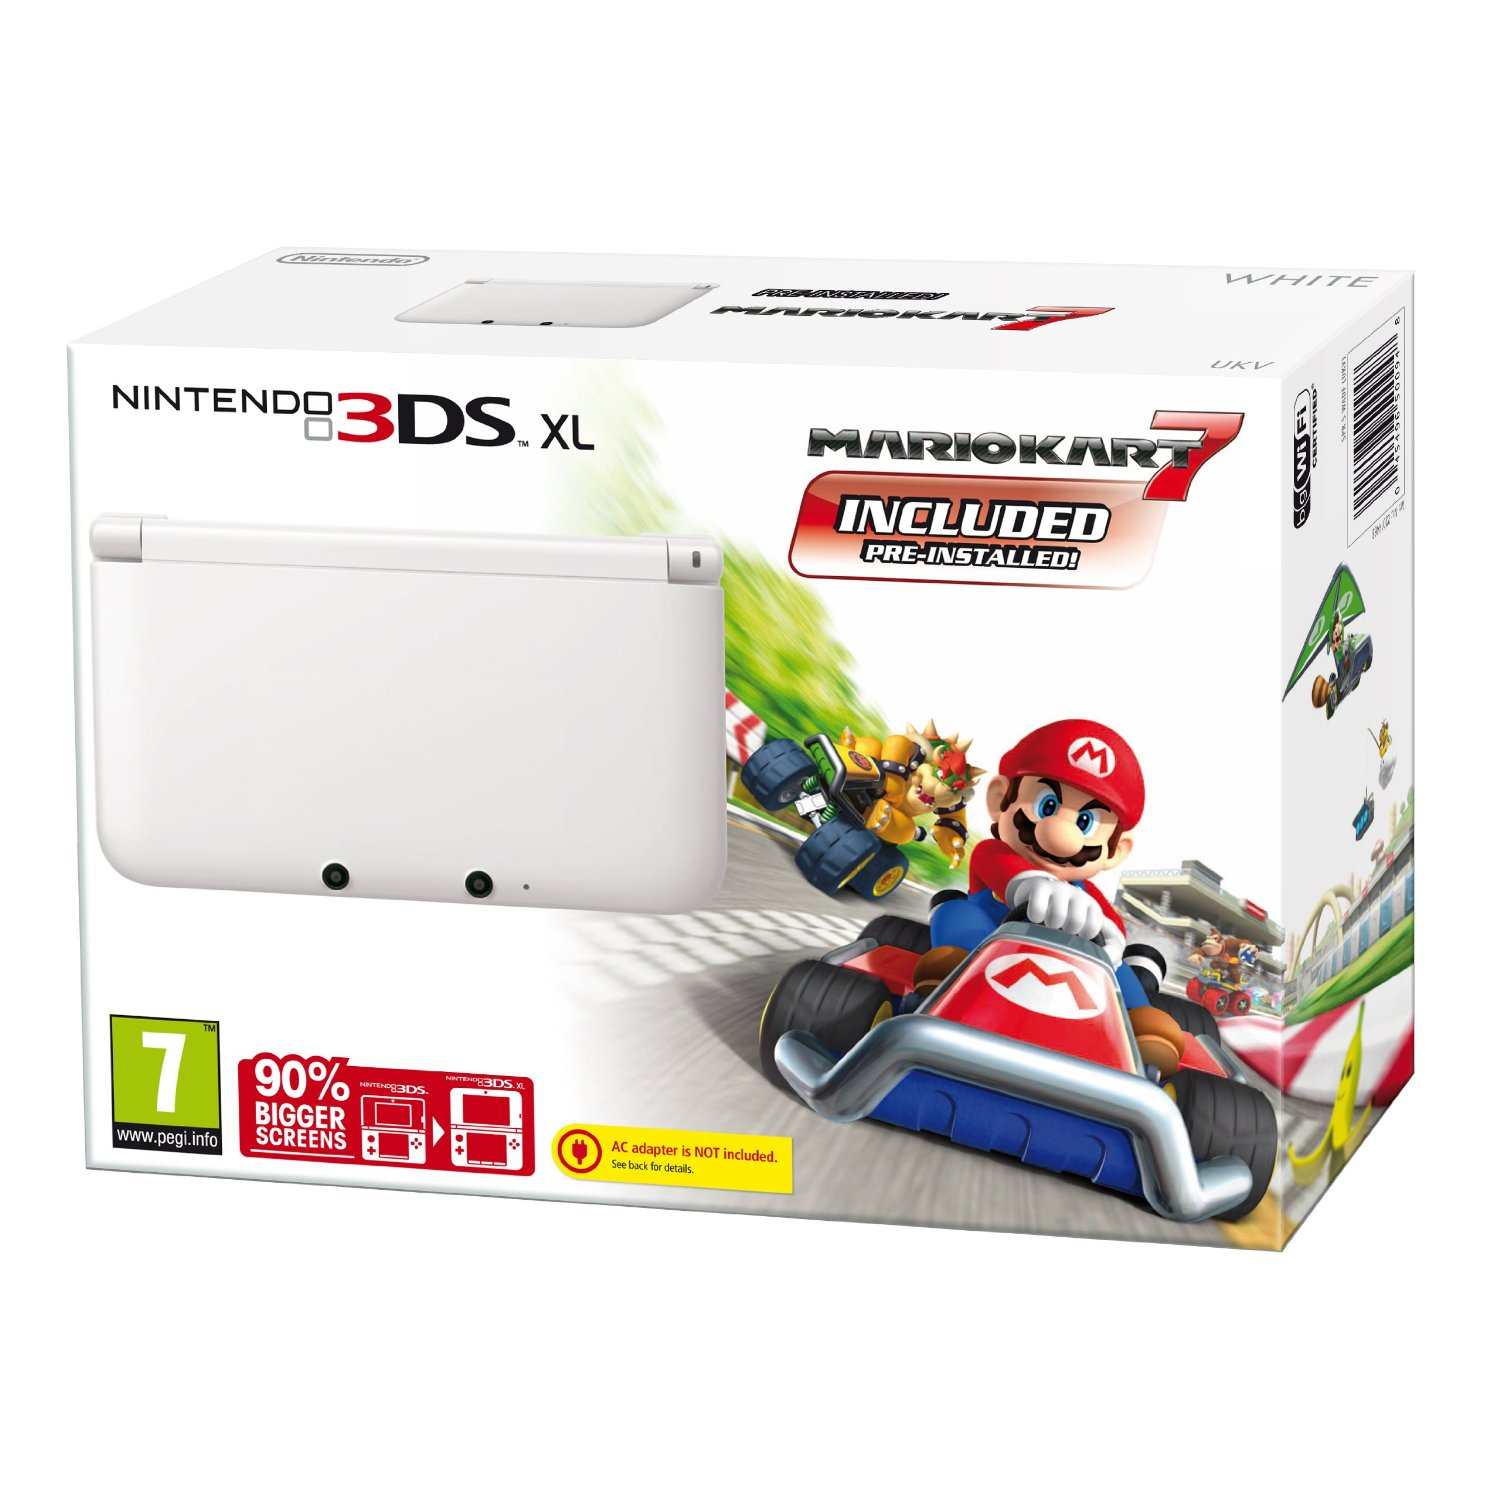 nintendo handheld console 3ds xl white mario kart 7 limited edition ebay. Black Bedroom Furniture Sets. Home Design Ideas